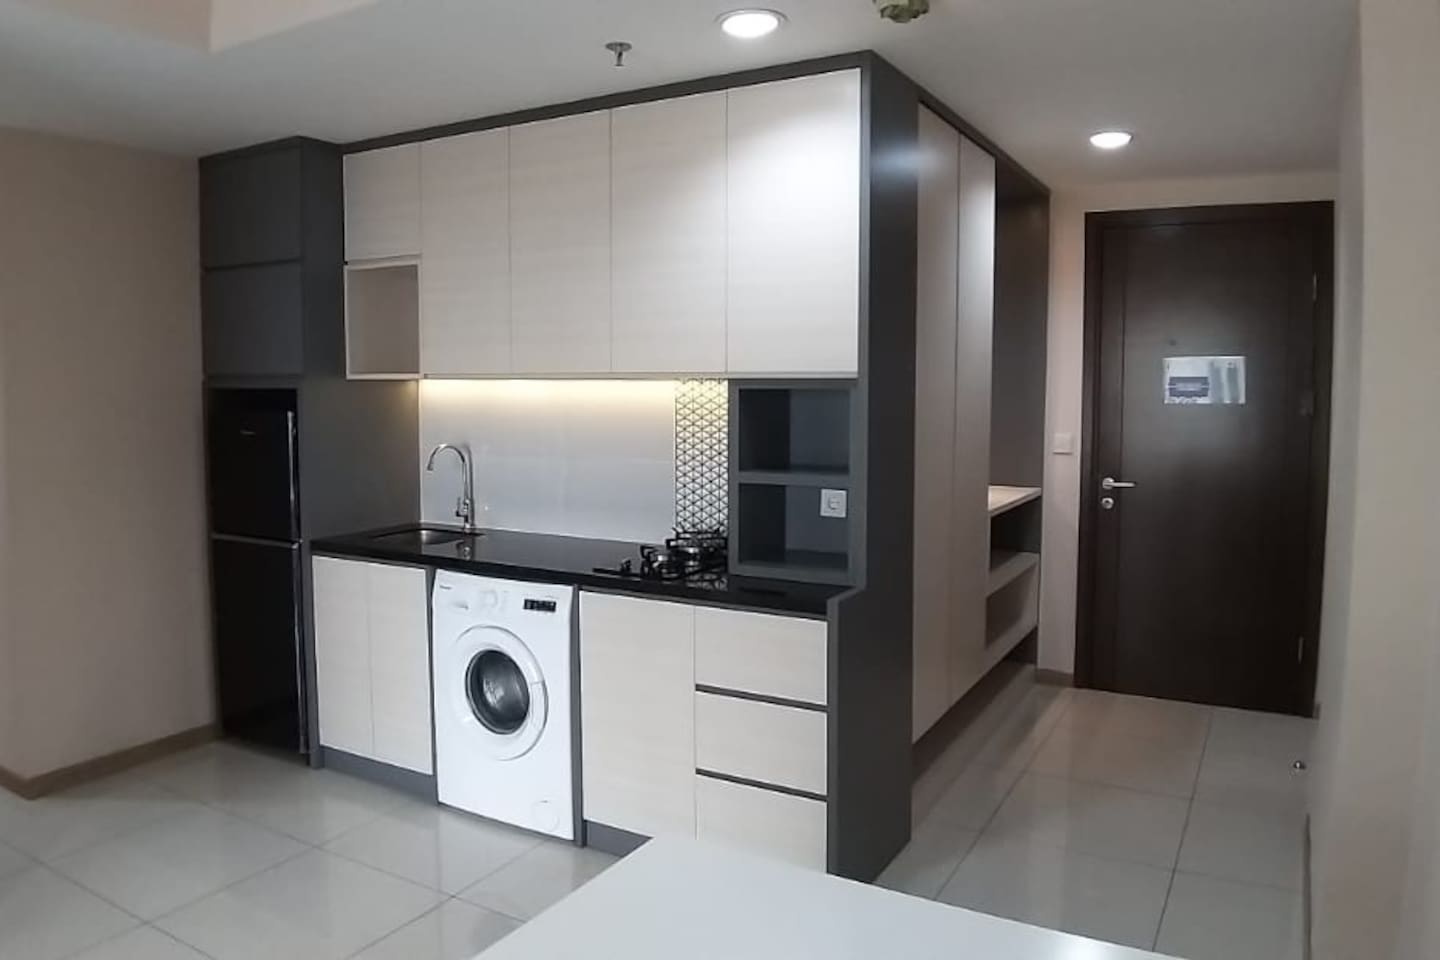 Entire Apartment with Full Kitchen